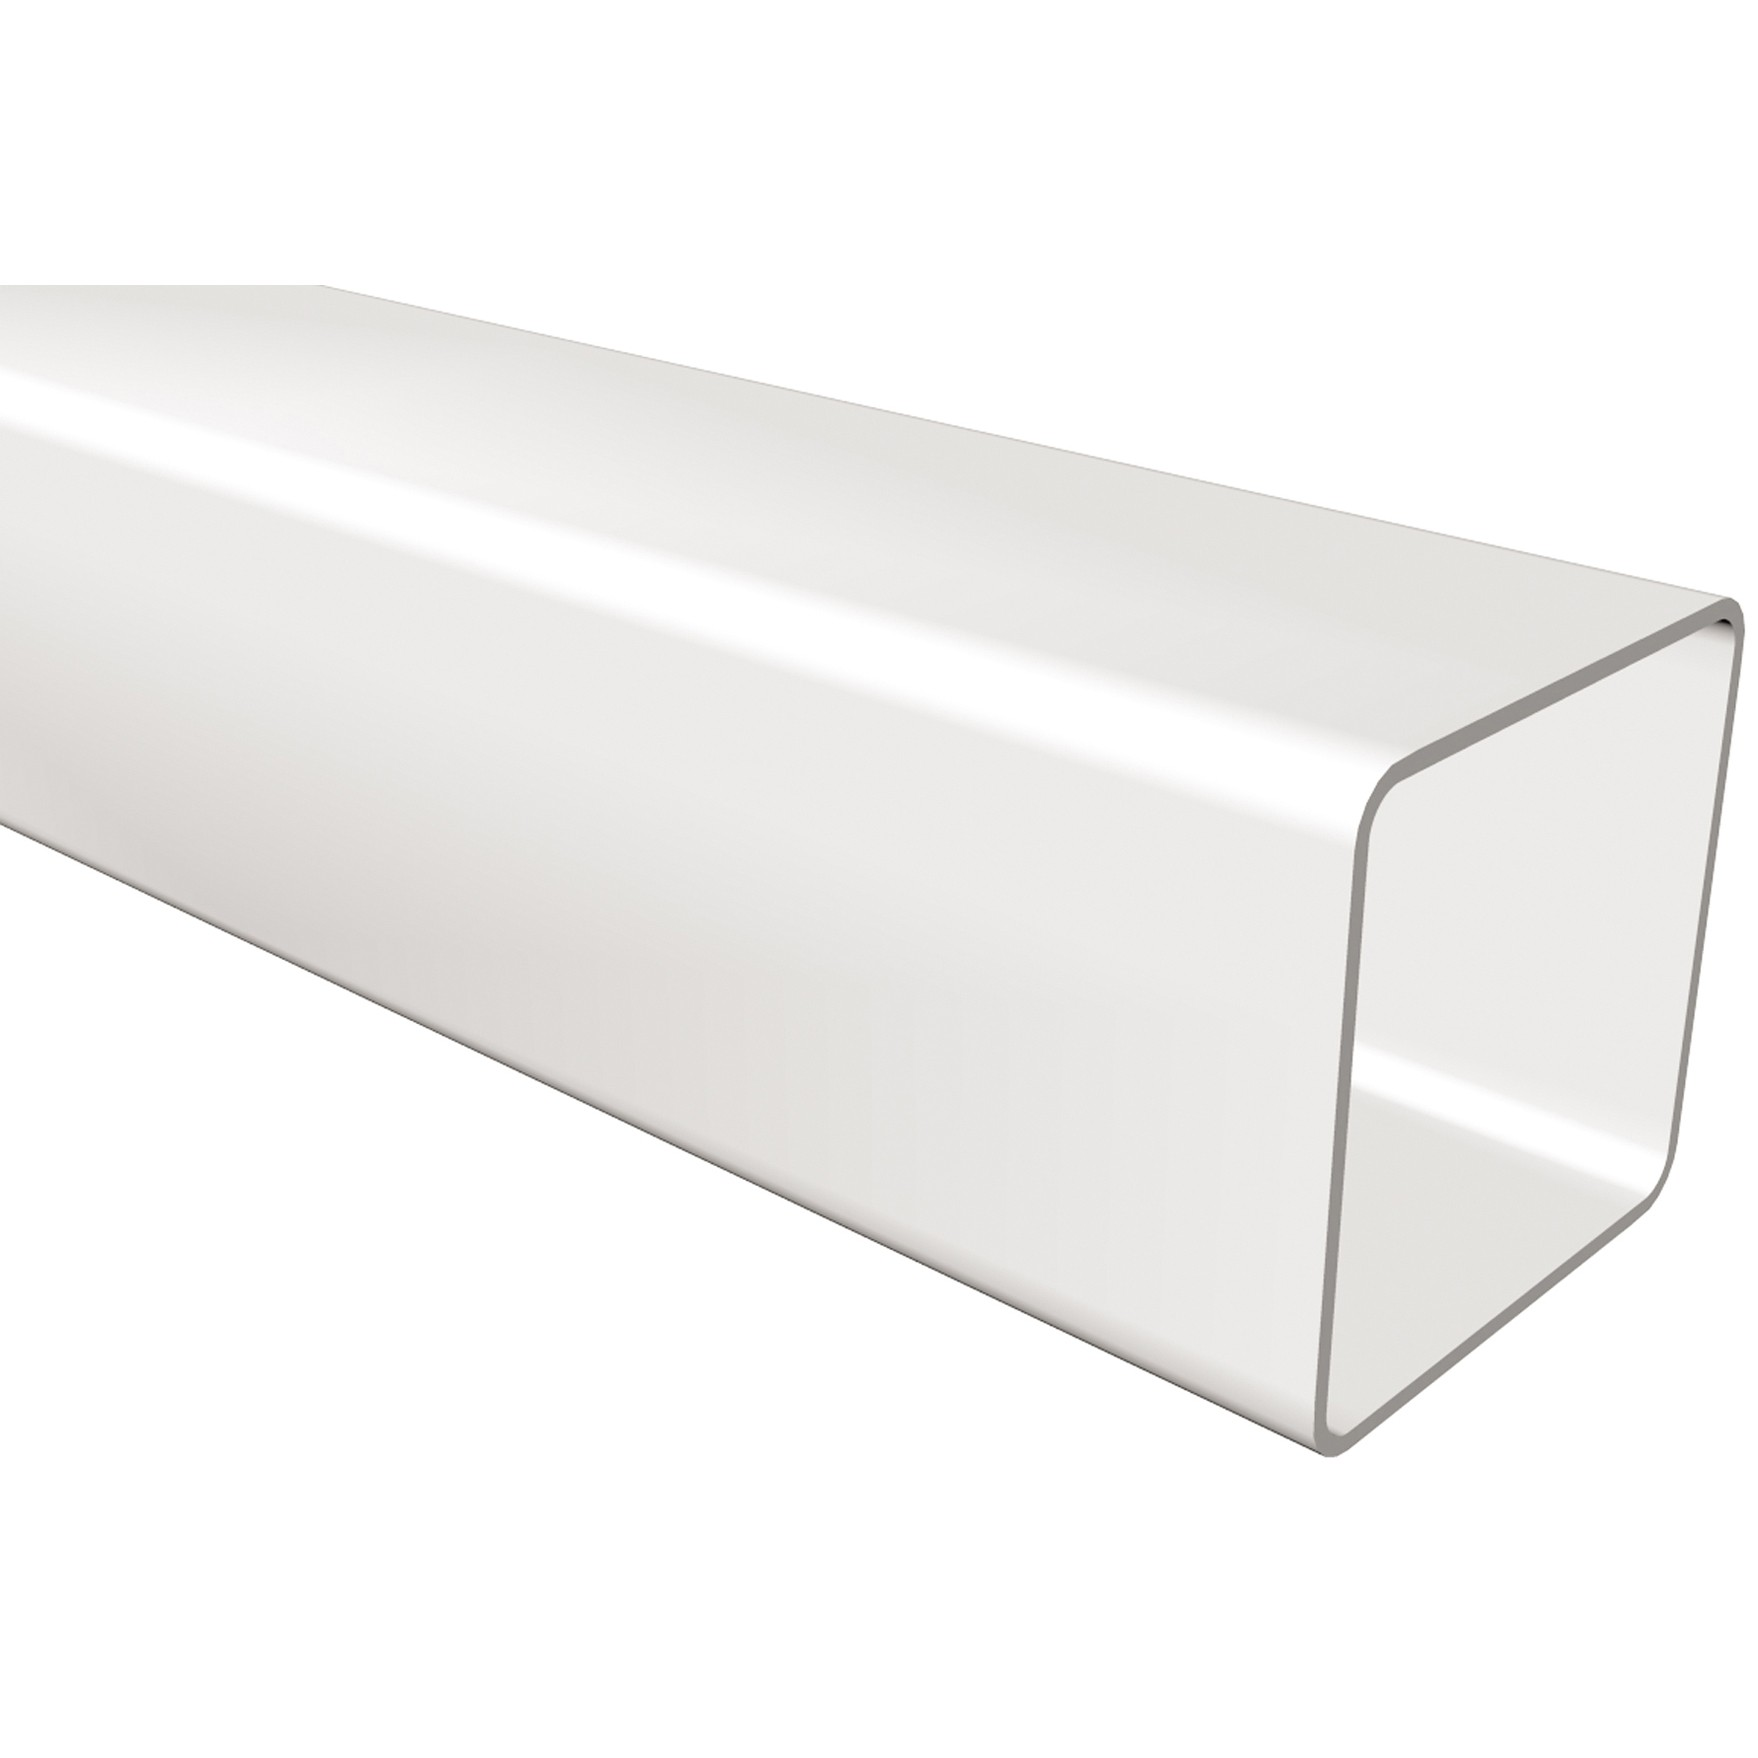 Freeflow 65mm Square Down Pipe - White, 4 metre